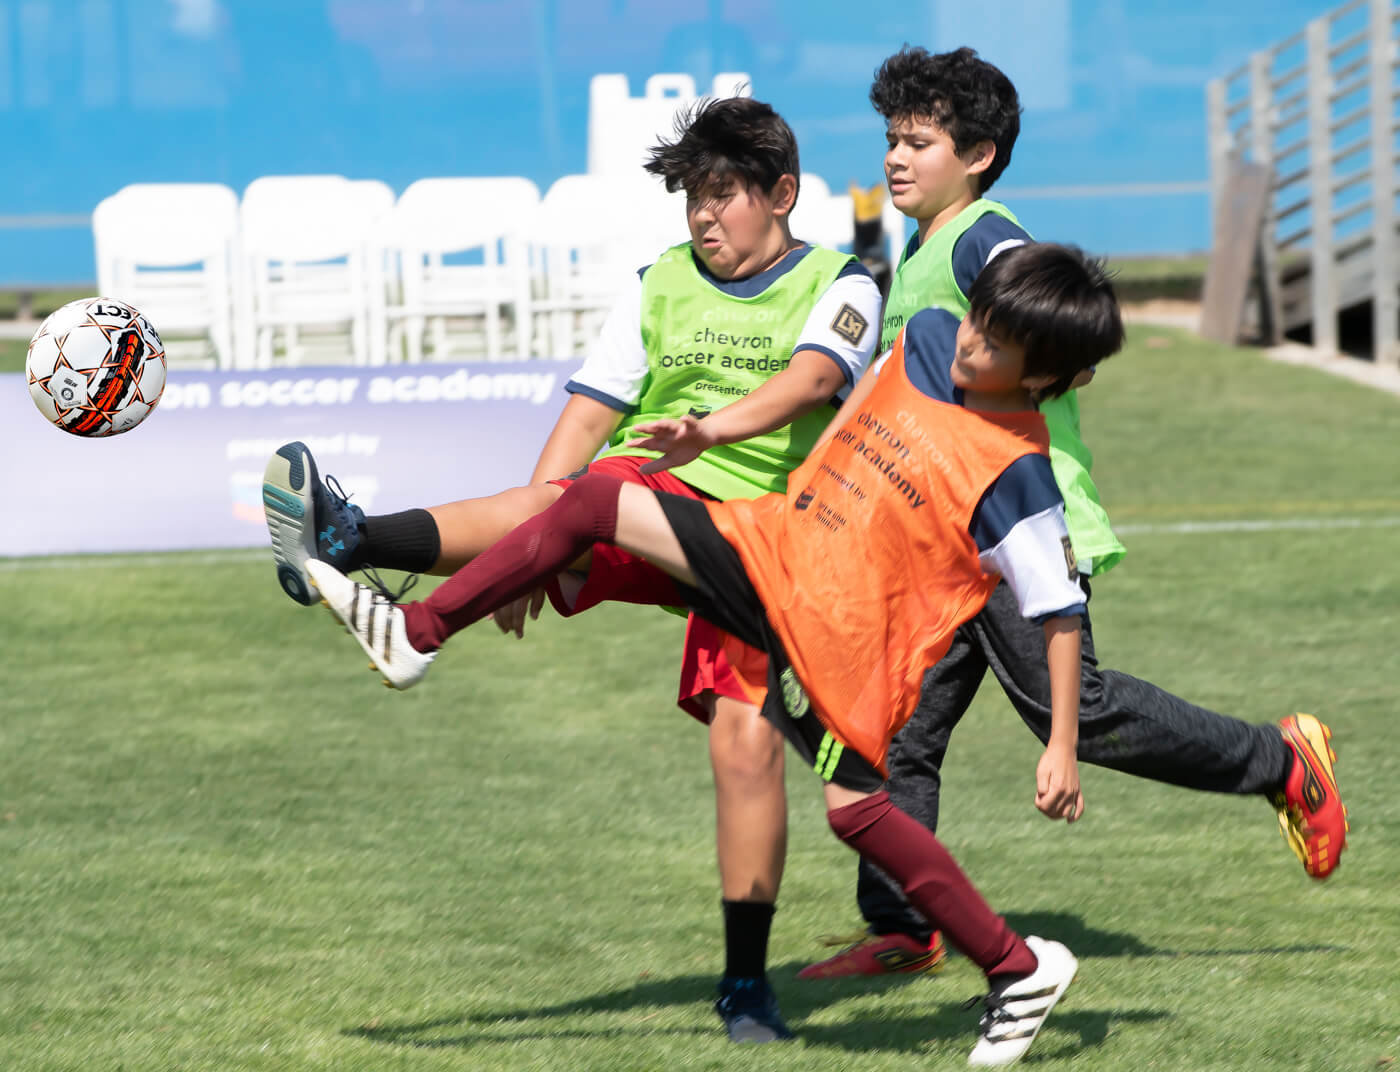 Commercial event photography captures sports at soccer camp event.